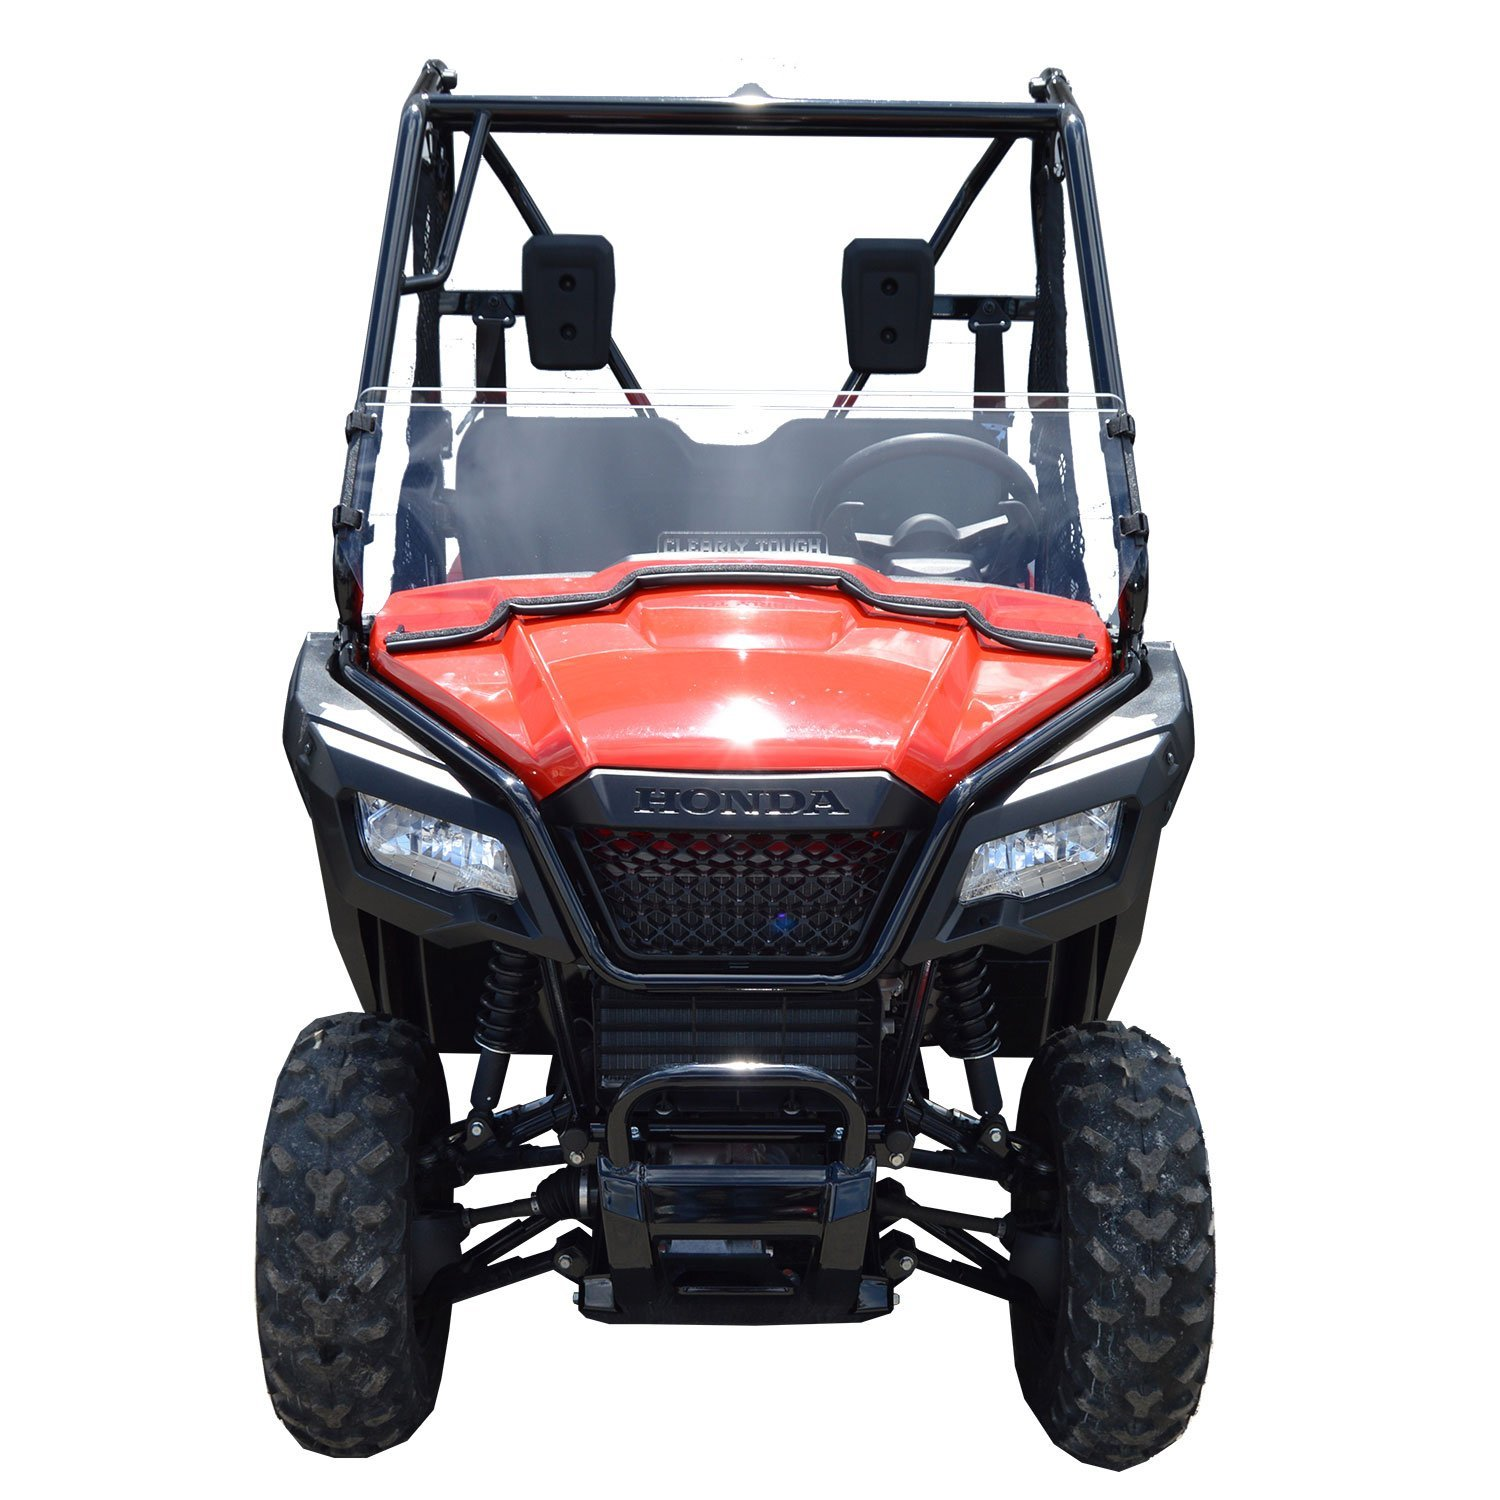 Honda Pioneer 500 Half Scratch Resistant UTV Windshield. The ultimate in side by side versatility! Easy on and off. Quickly install or remove!Premium polycarbonate w/ Hard CoatMade in America!